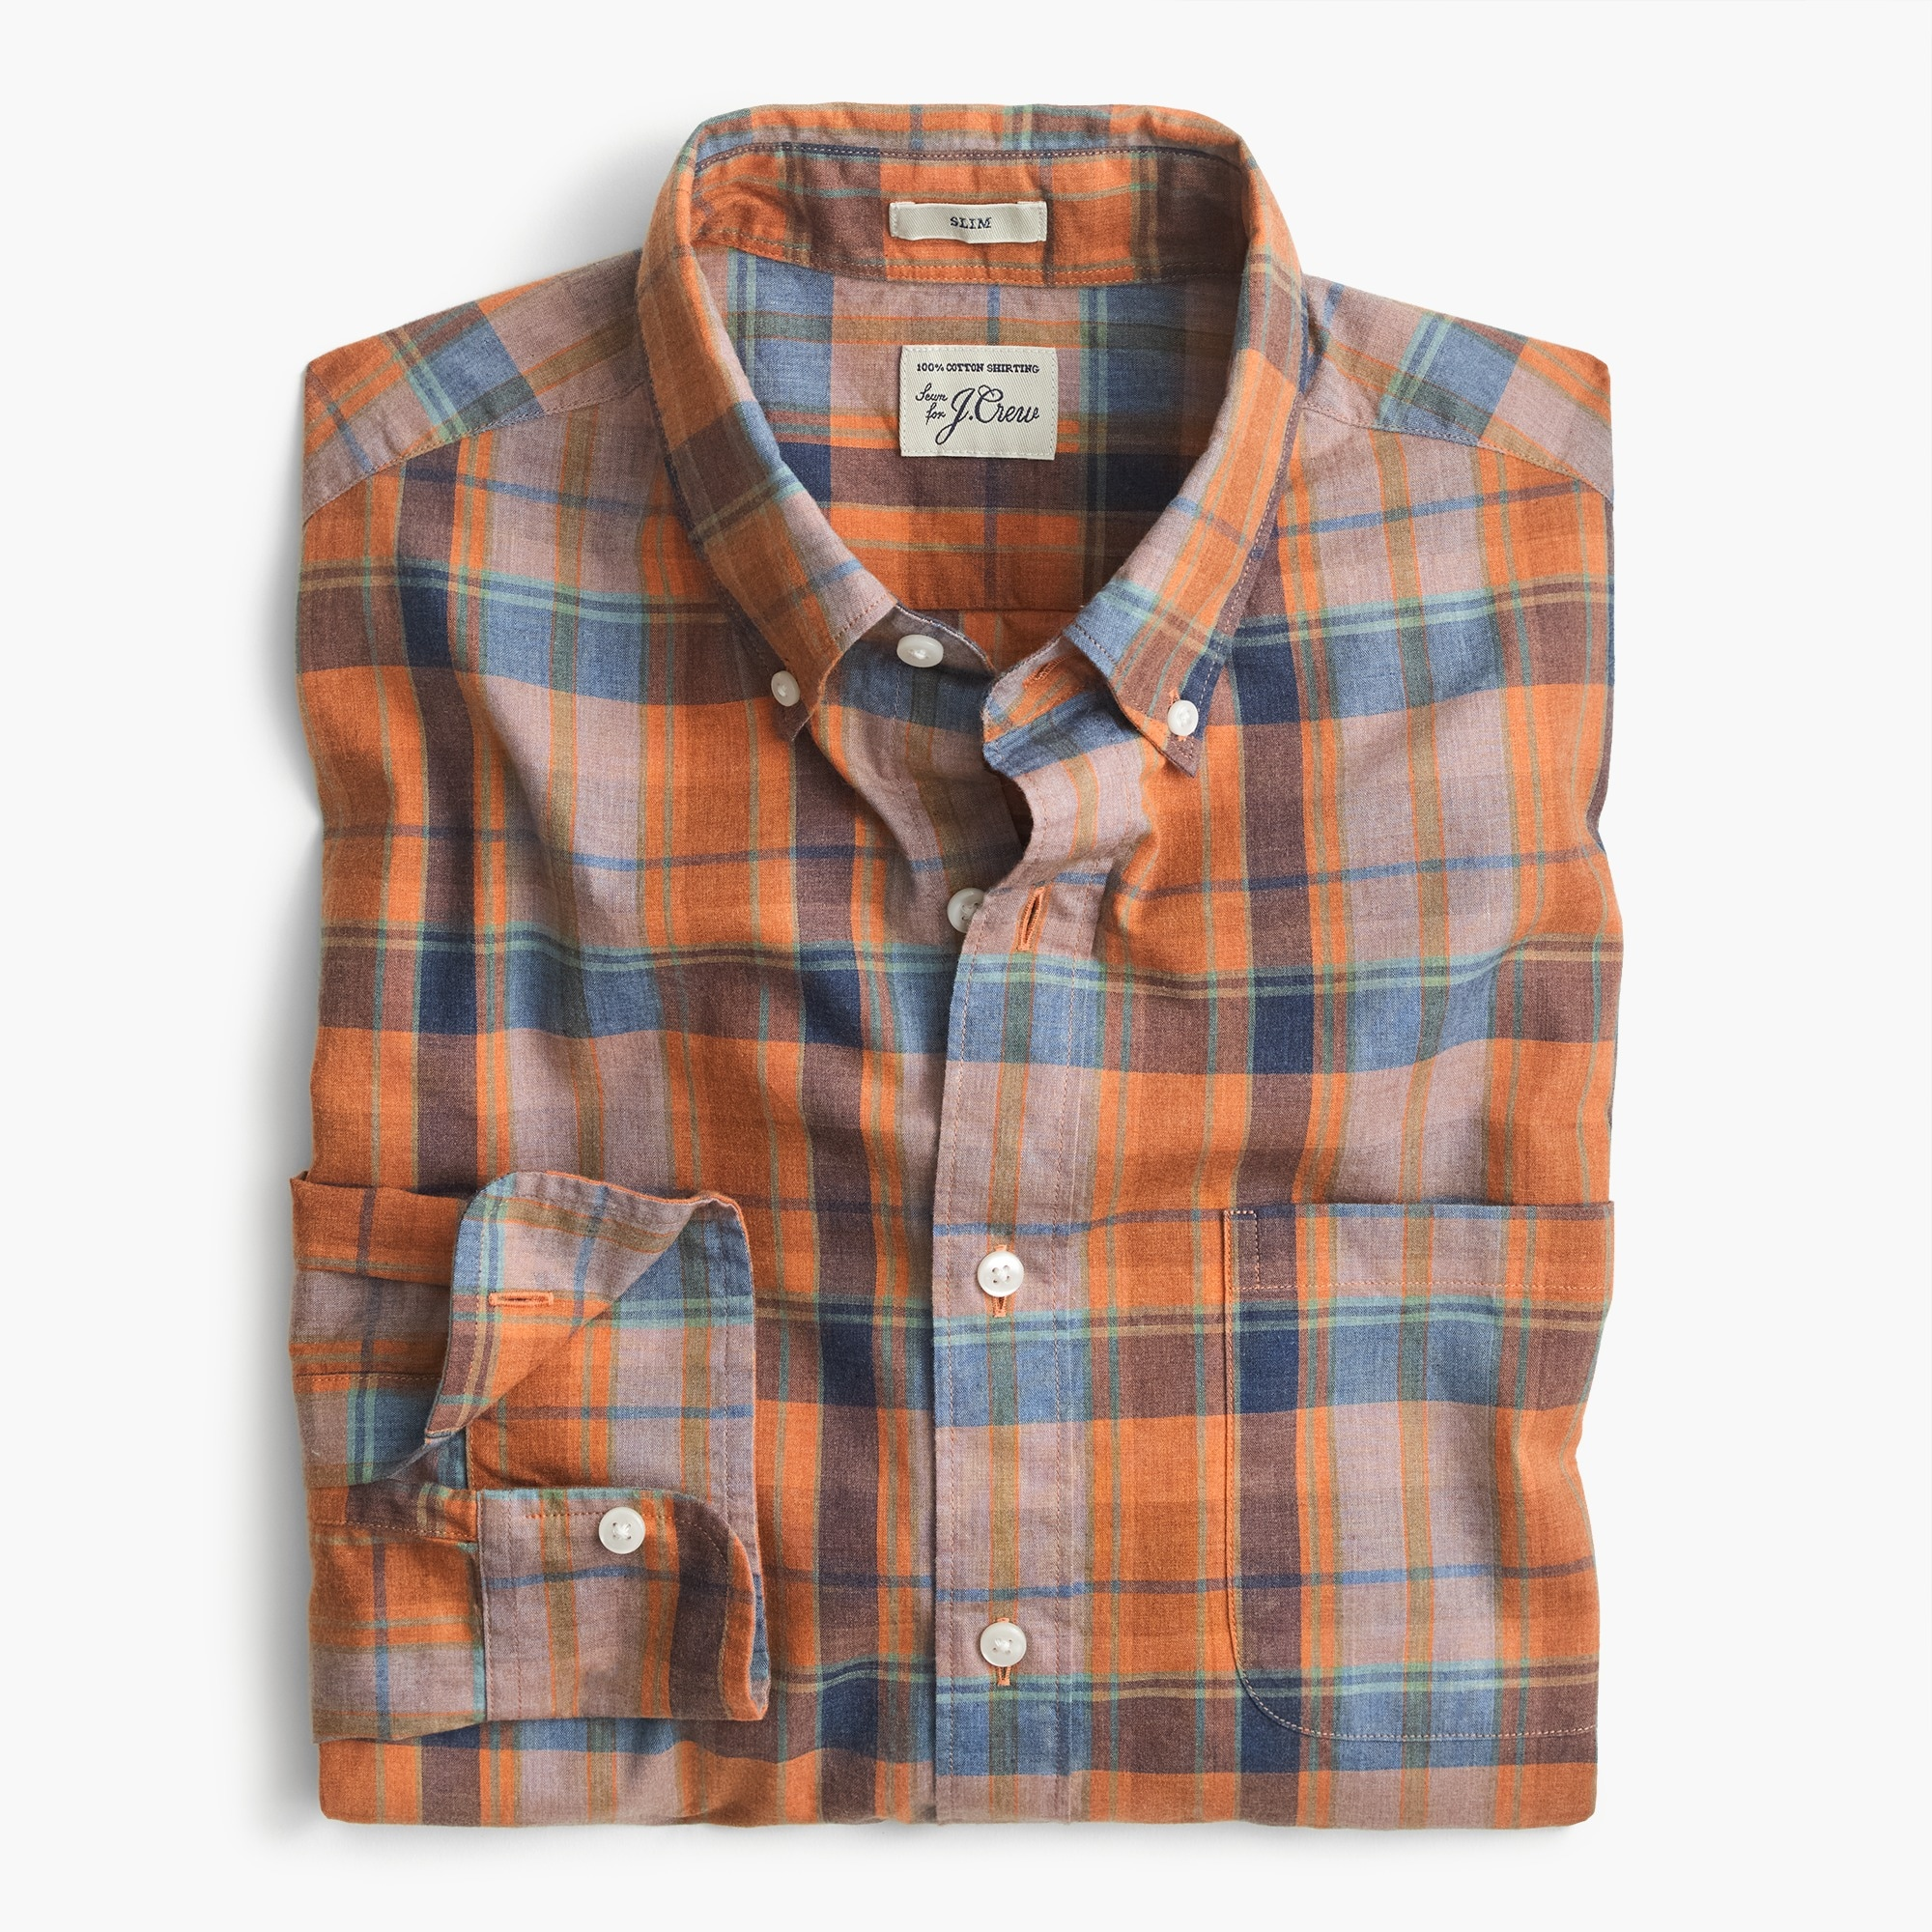 Slim Secret Wash shirt in heather poplin plaid